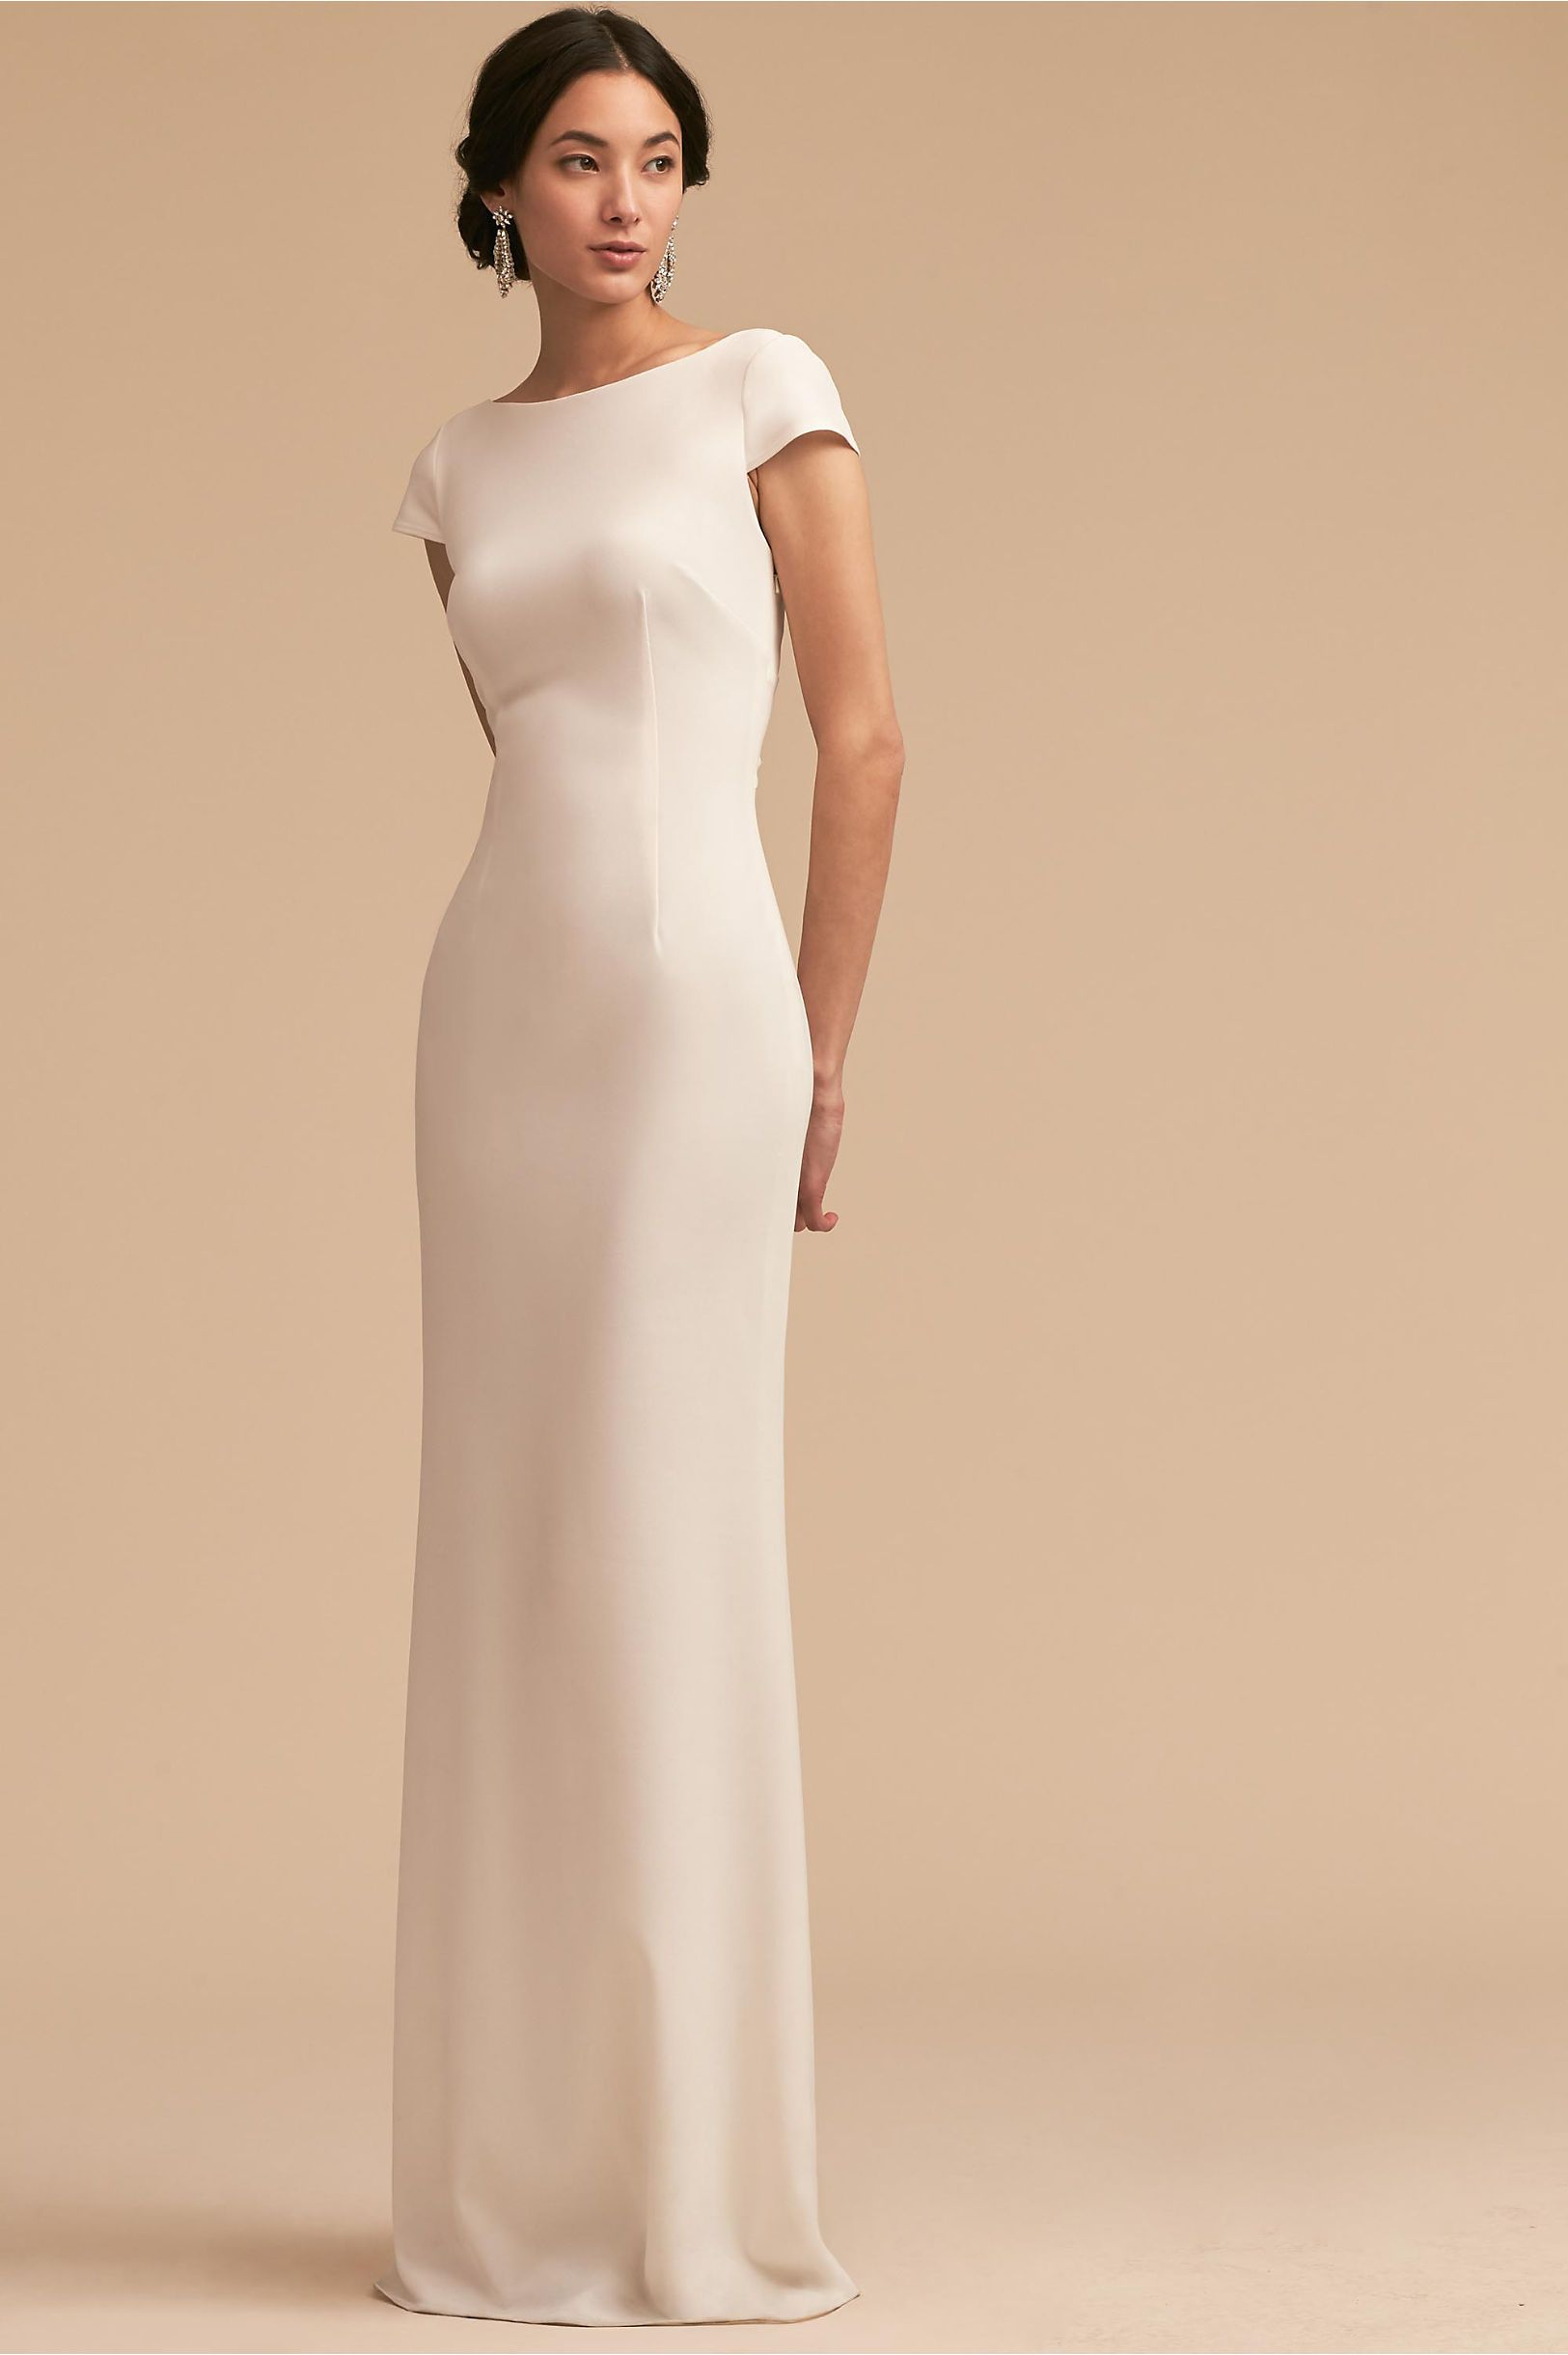 effortless elegance | Sawyer Gown from BHLDN | The Modern Bride ...